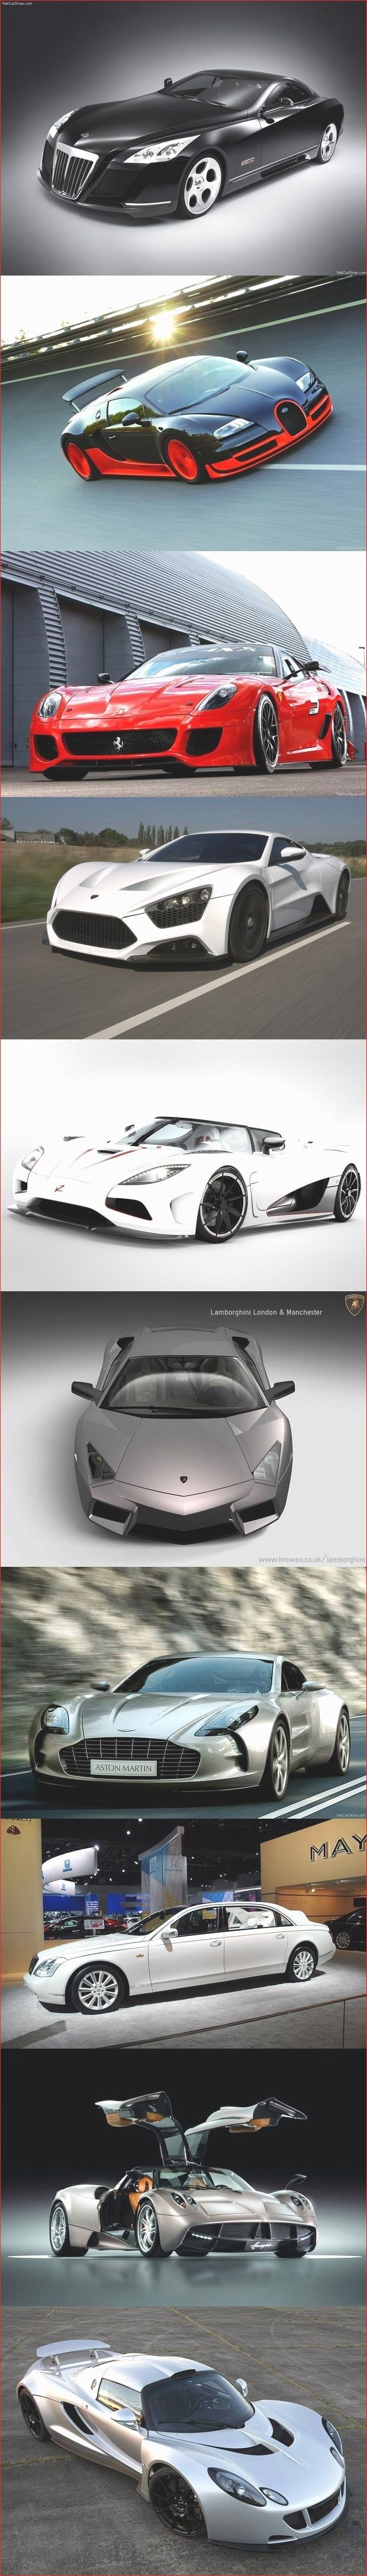 Luxury Lifestyle Mens Cars - Luxury Luxury Lifestyle Mens Cars, Best 25 Most Luxurious Car Ideas On Pinterest